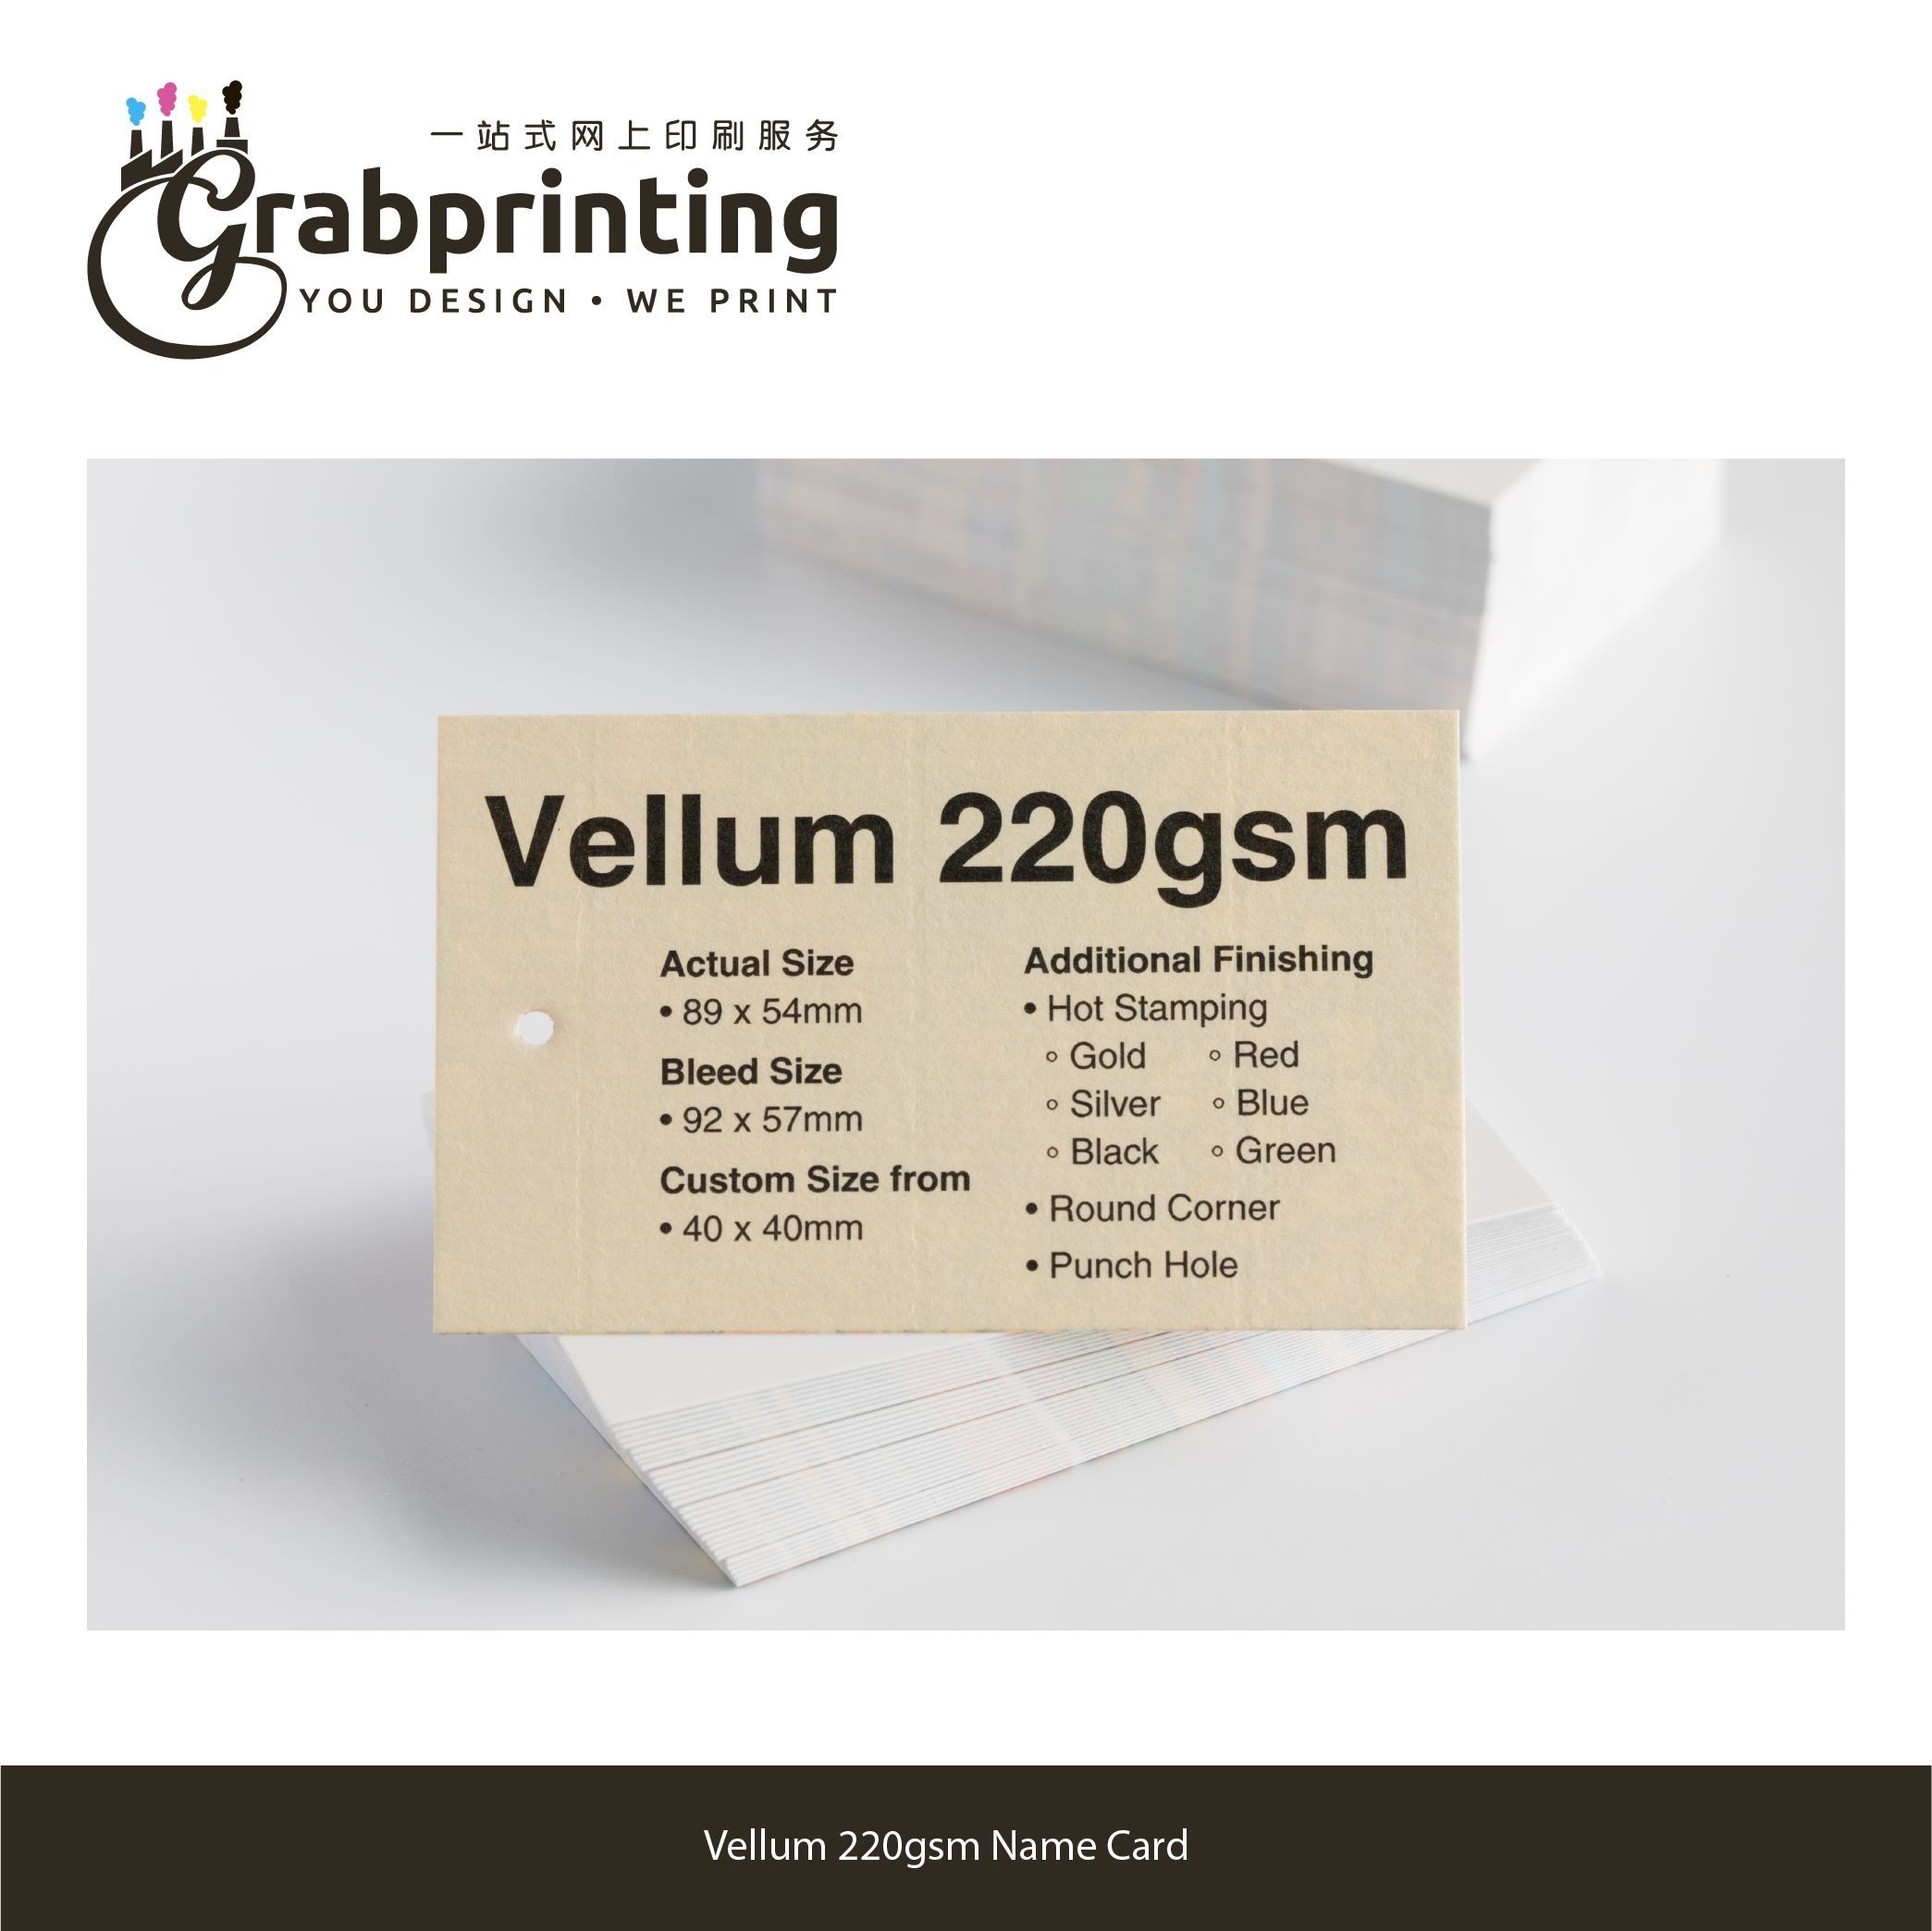 Name Card Sample Kit grabprinting 40 Vellum 220gsm Name Card 501px 501px